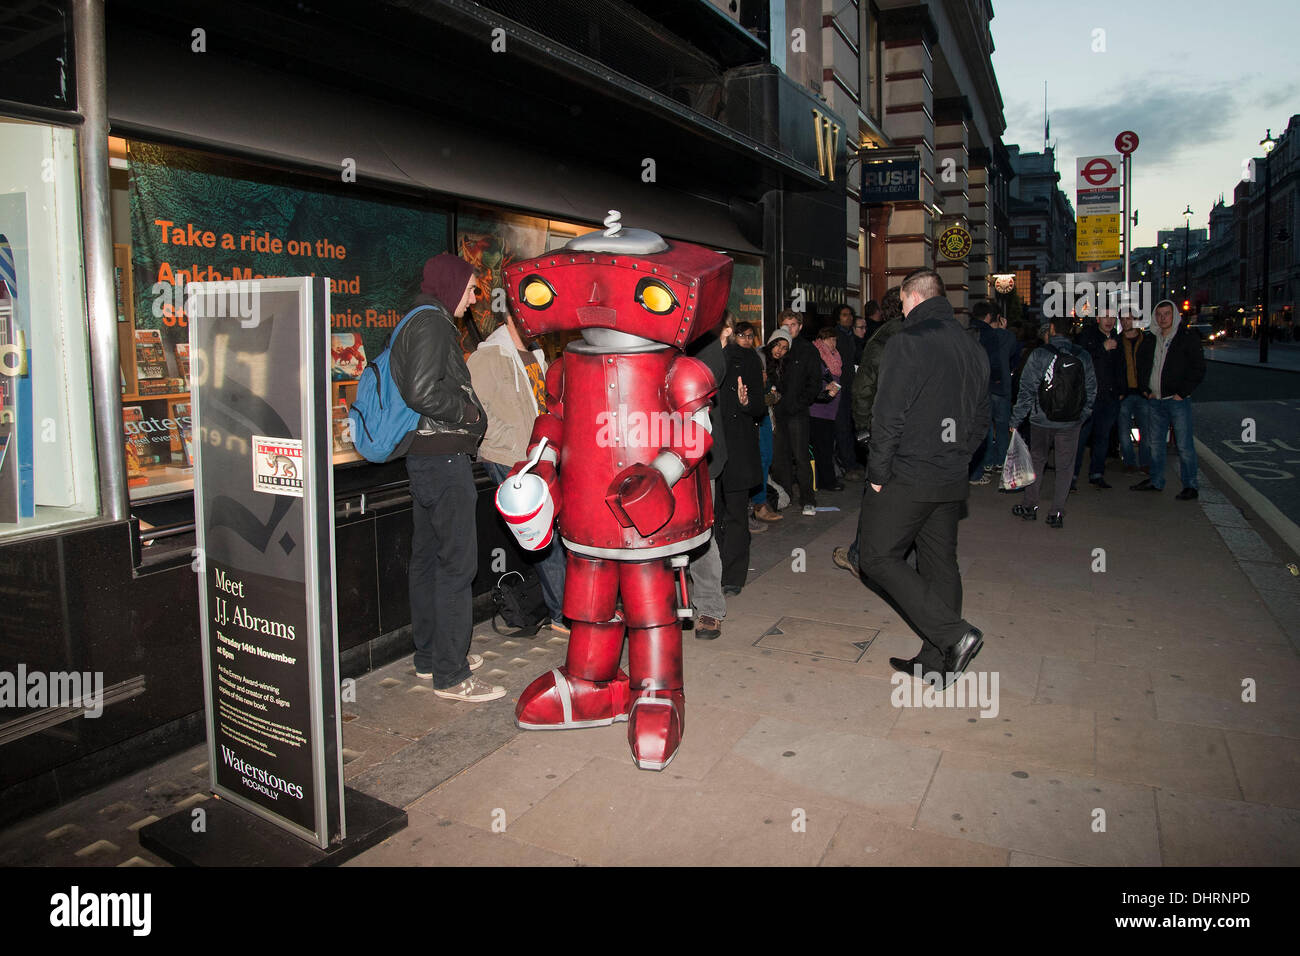 London, UK. 14th November 2013. A man dressed in a Bad Robot costume queues up with other fans outside Waterstones book shop in London's Piccadilly to have copies of S. signed by its author JJ Abrams. - Stock Image